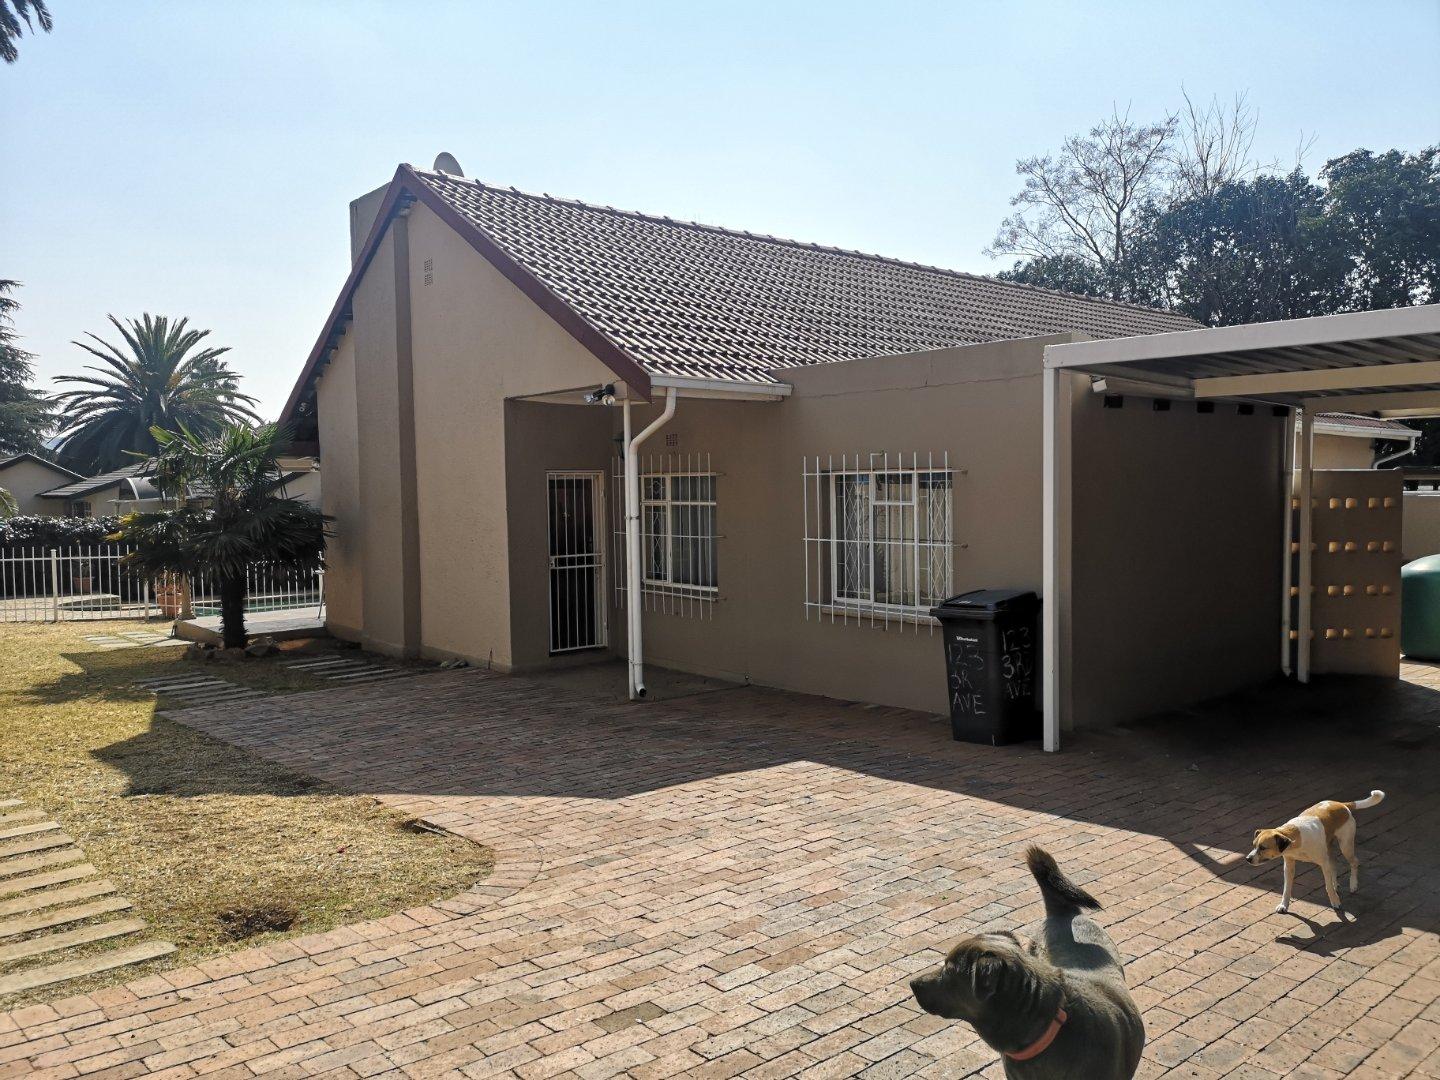 3 Bedroom House for Sale in Edenvale